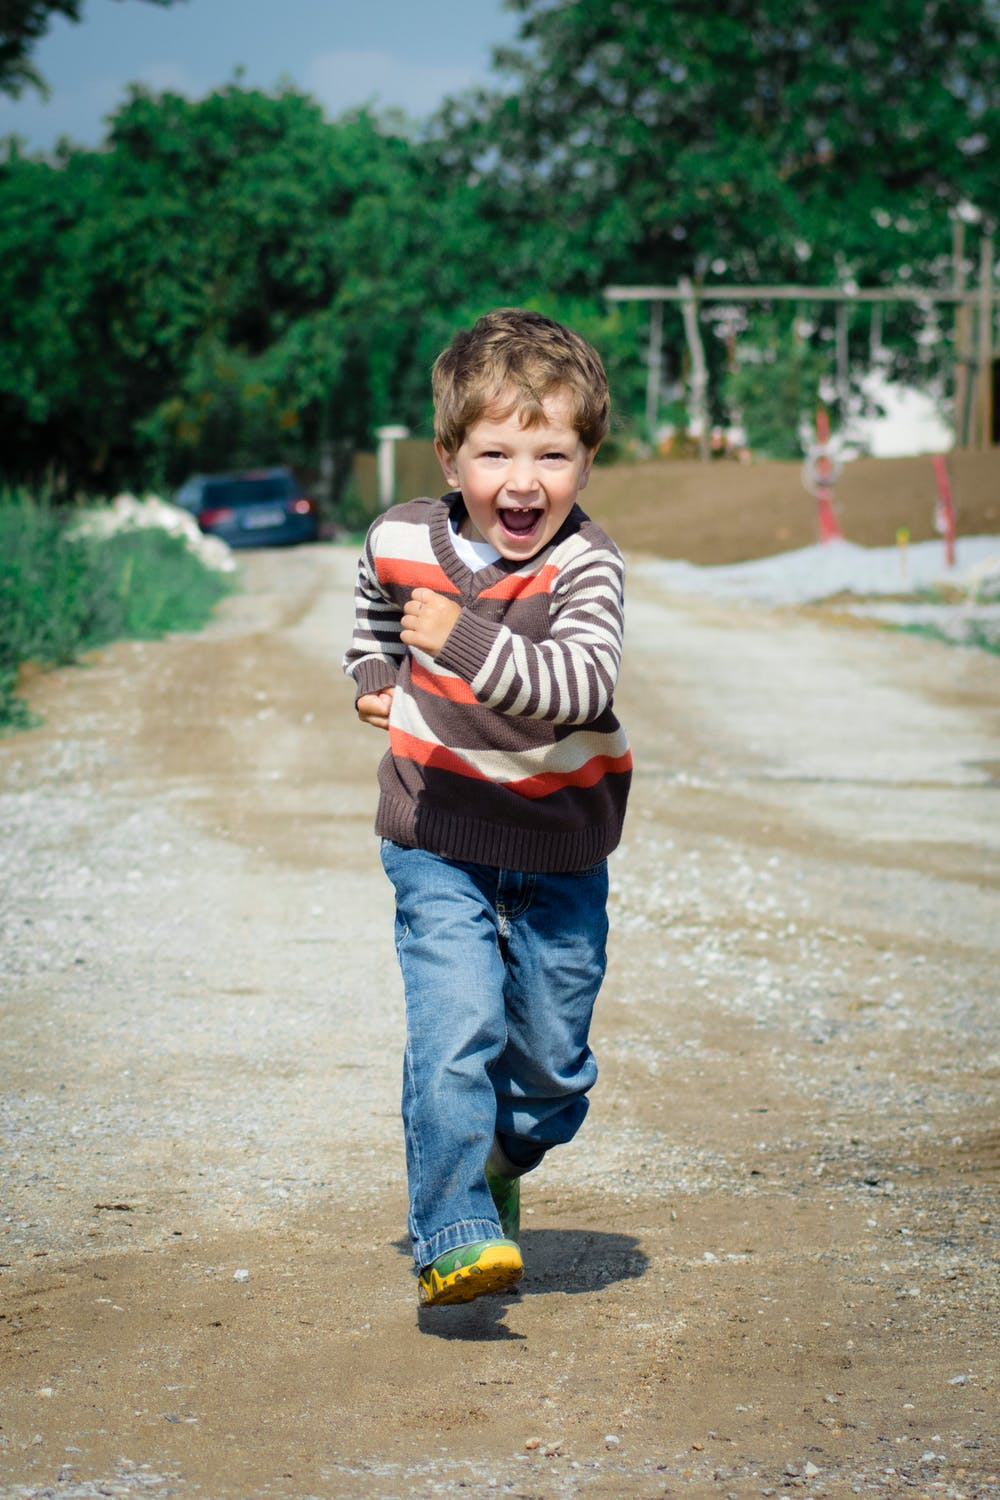 Happy little boy running outdoors in the park. | Photo: Pexels